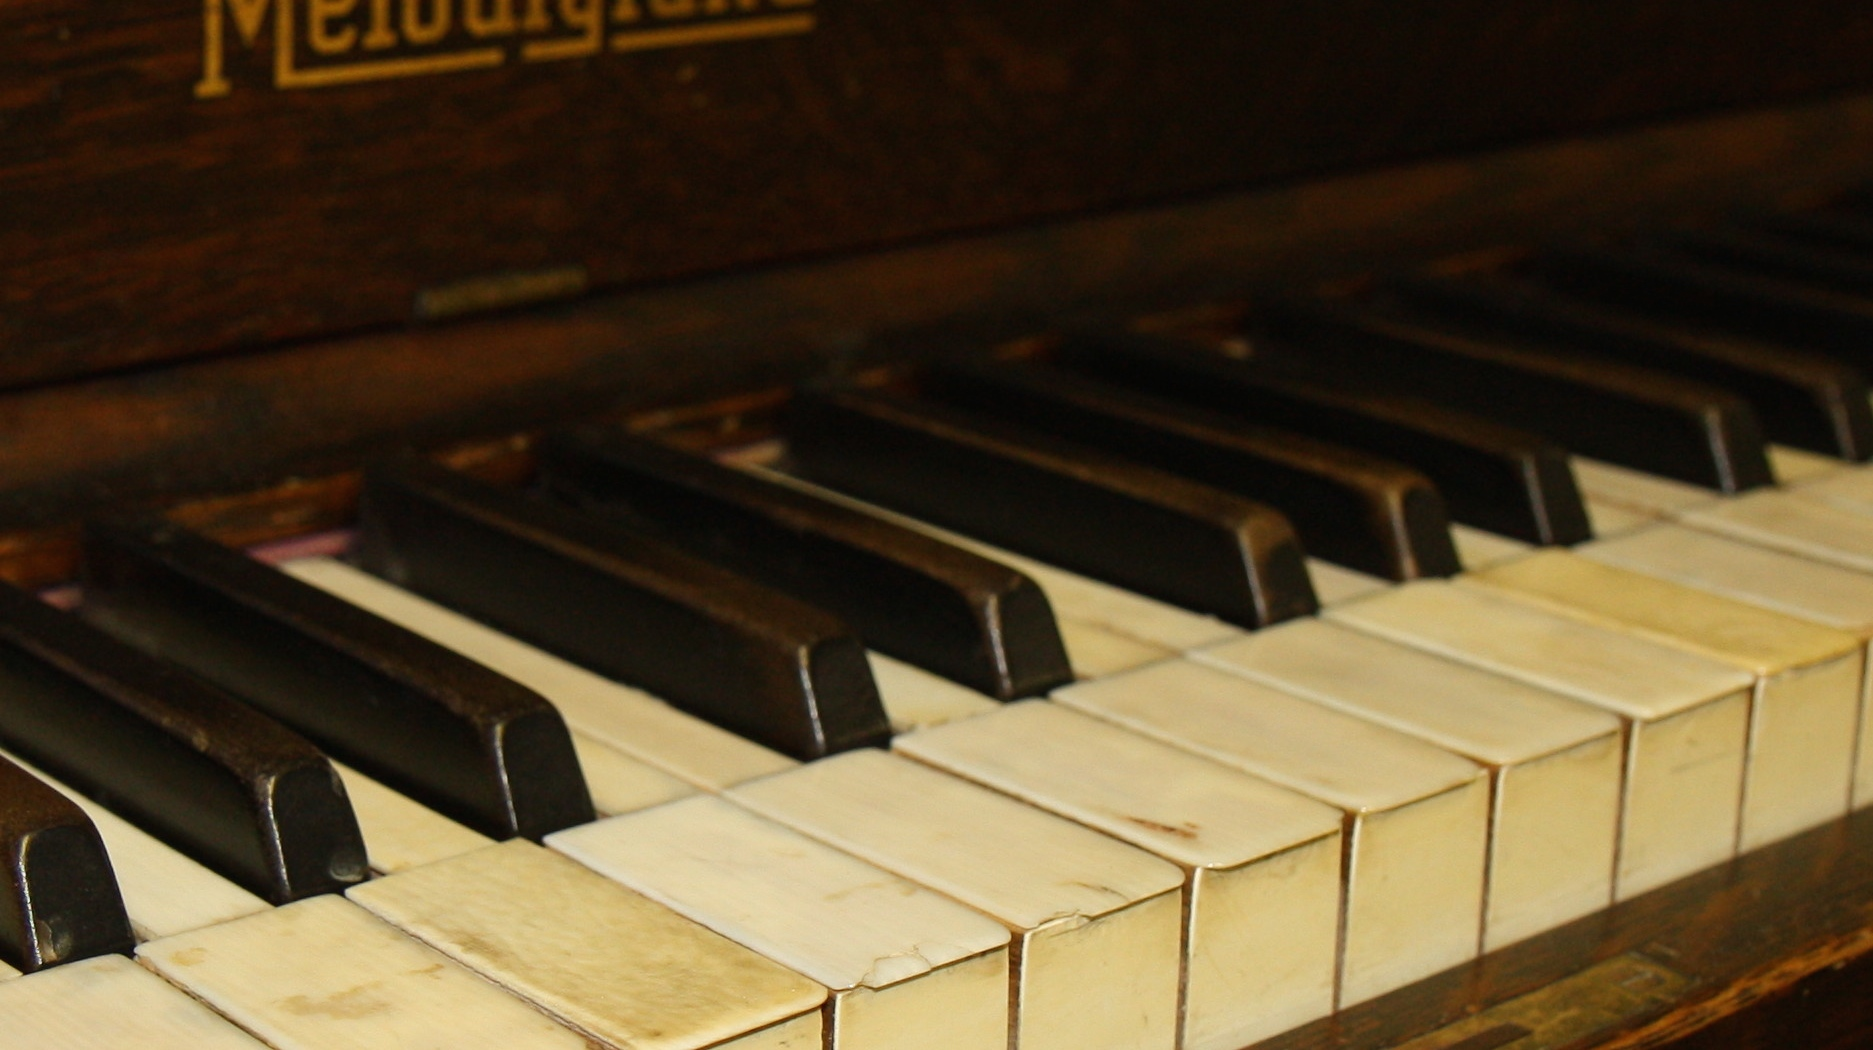 Piano Keys (Cropped for Featured Image)